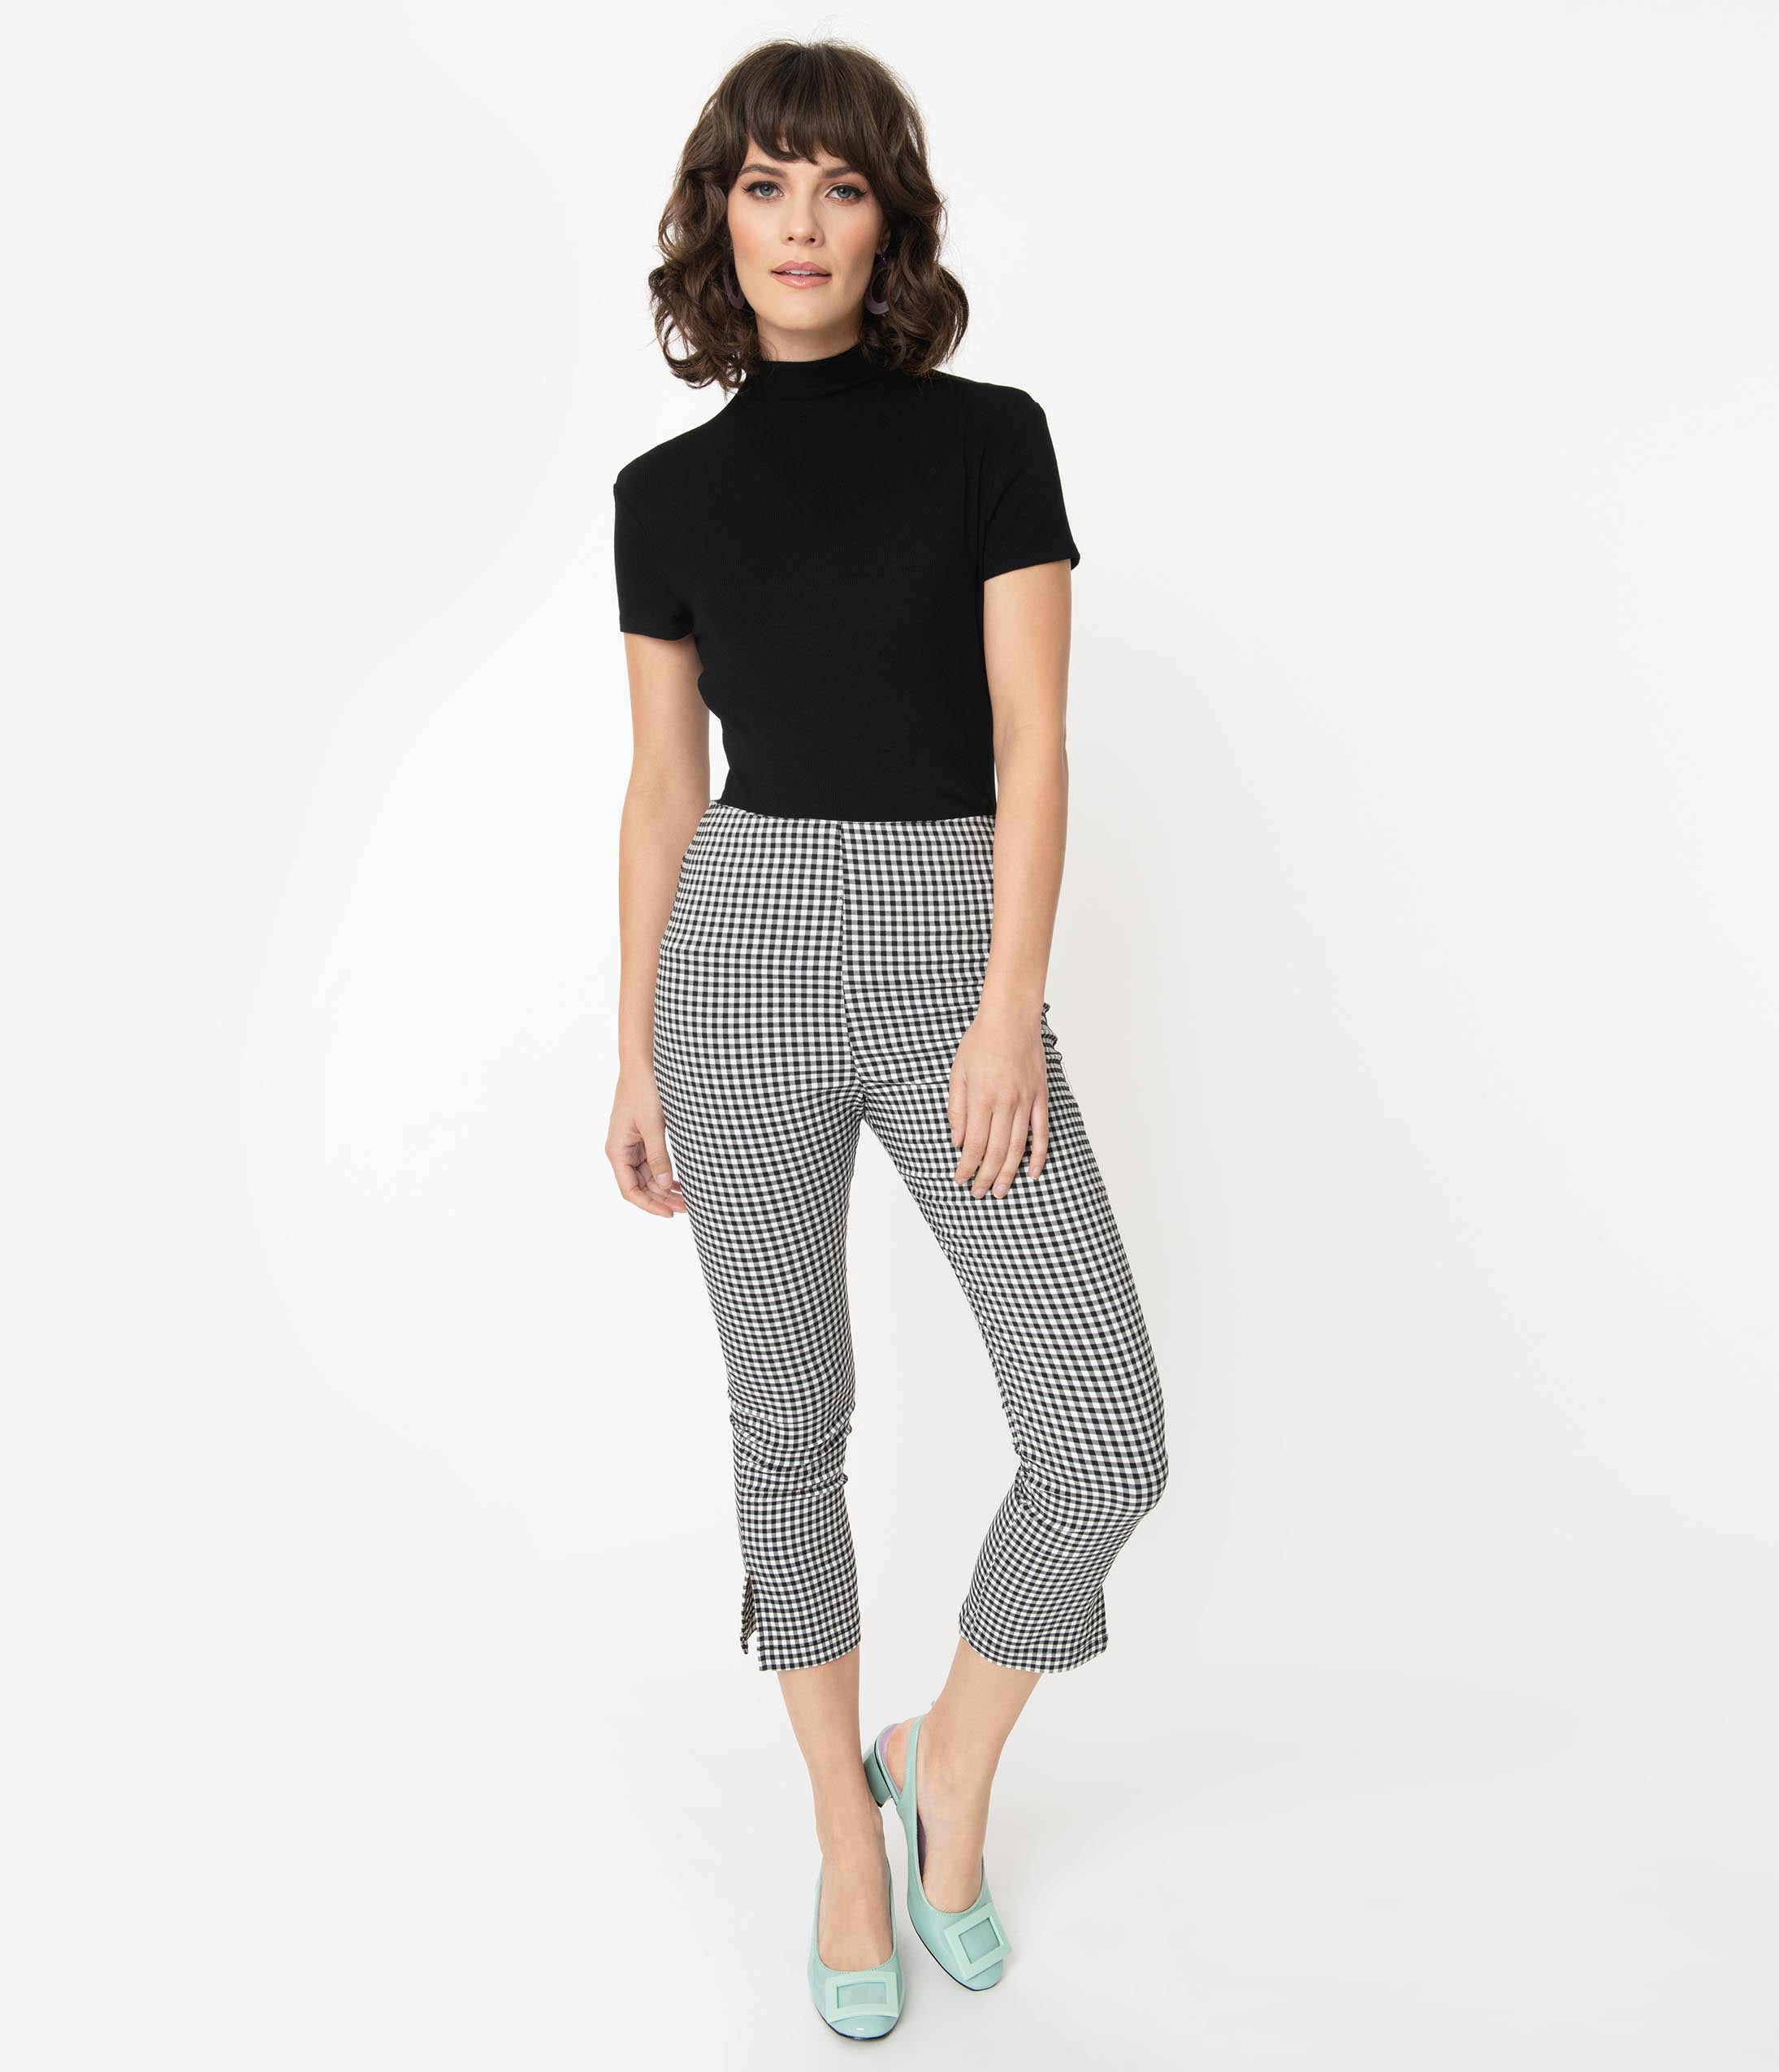 1950s Pants History for Women Unique Vintage Black  White Gingham Rachelle Capri Pants $58.00 AT vintagedancer.com